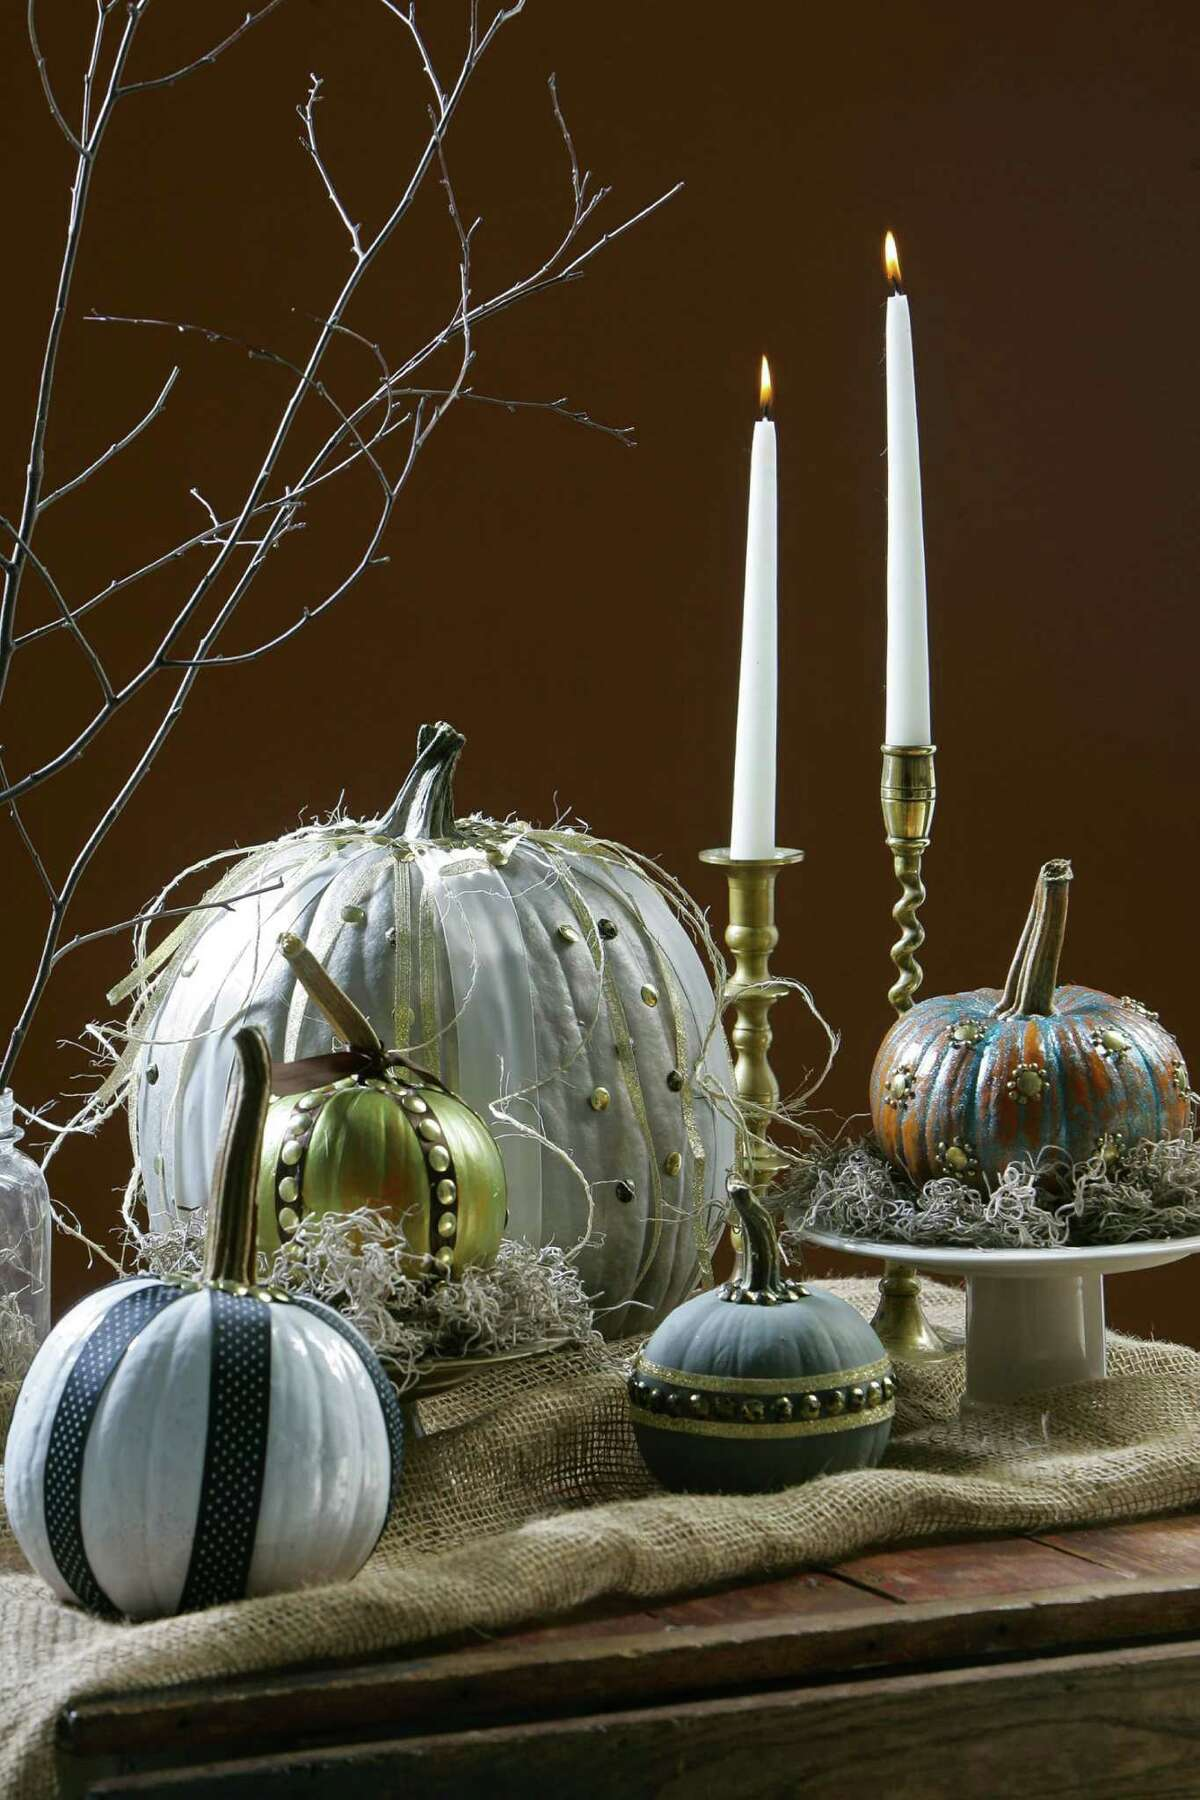 Real pumpkins can be turned into boutique-like deocrations with spray paint, acrylics and a few other accessories such as tacks from a hardware store and ribbons. (Jim Barcus/Kansas City Star/MCT)